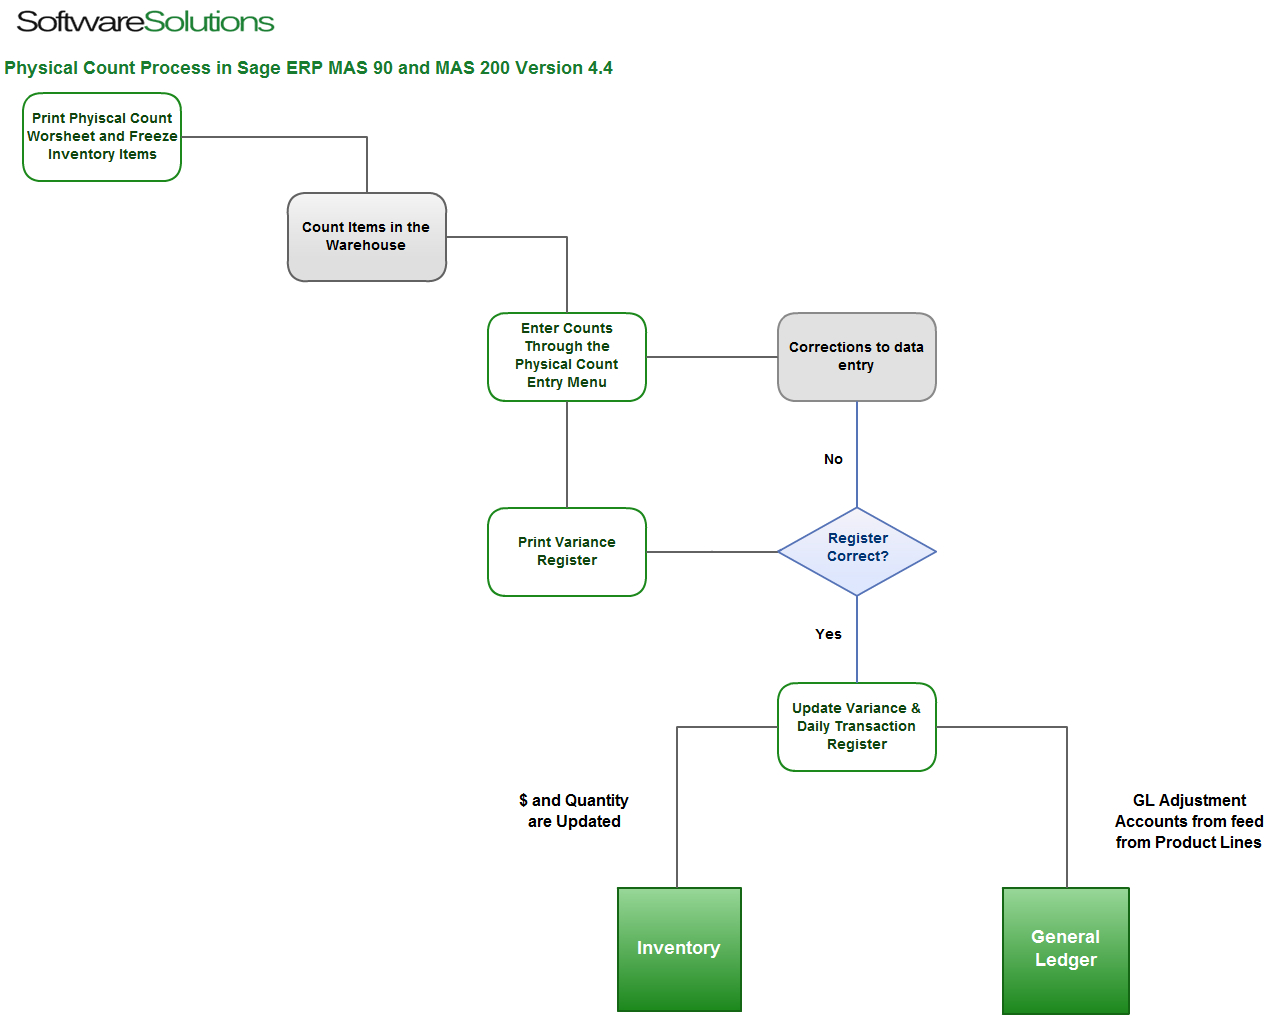 Sage ERP MAS90 and MAS200 Physical Count Flowchart